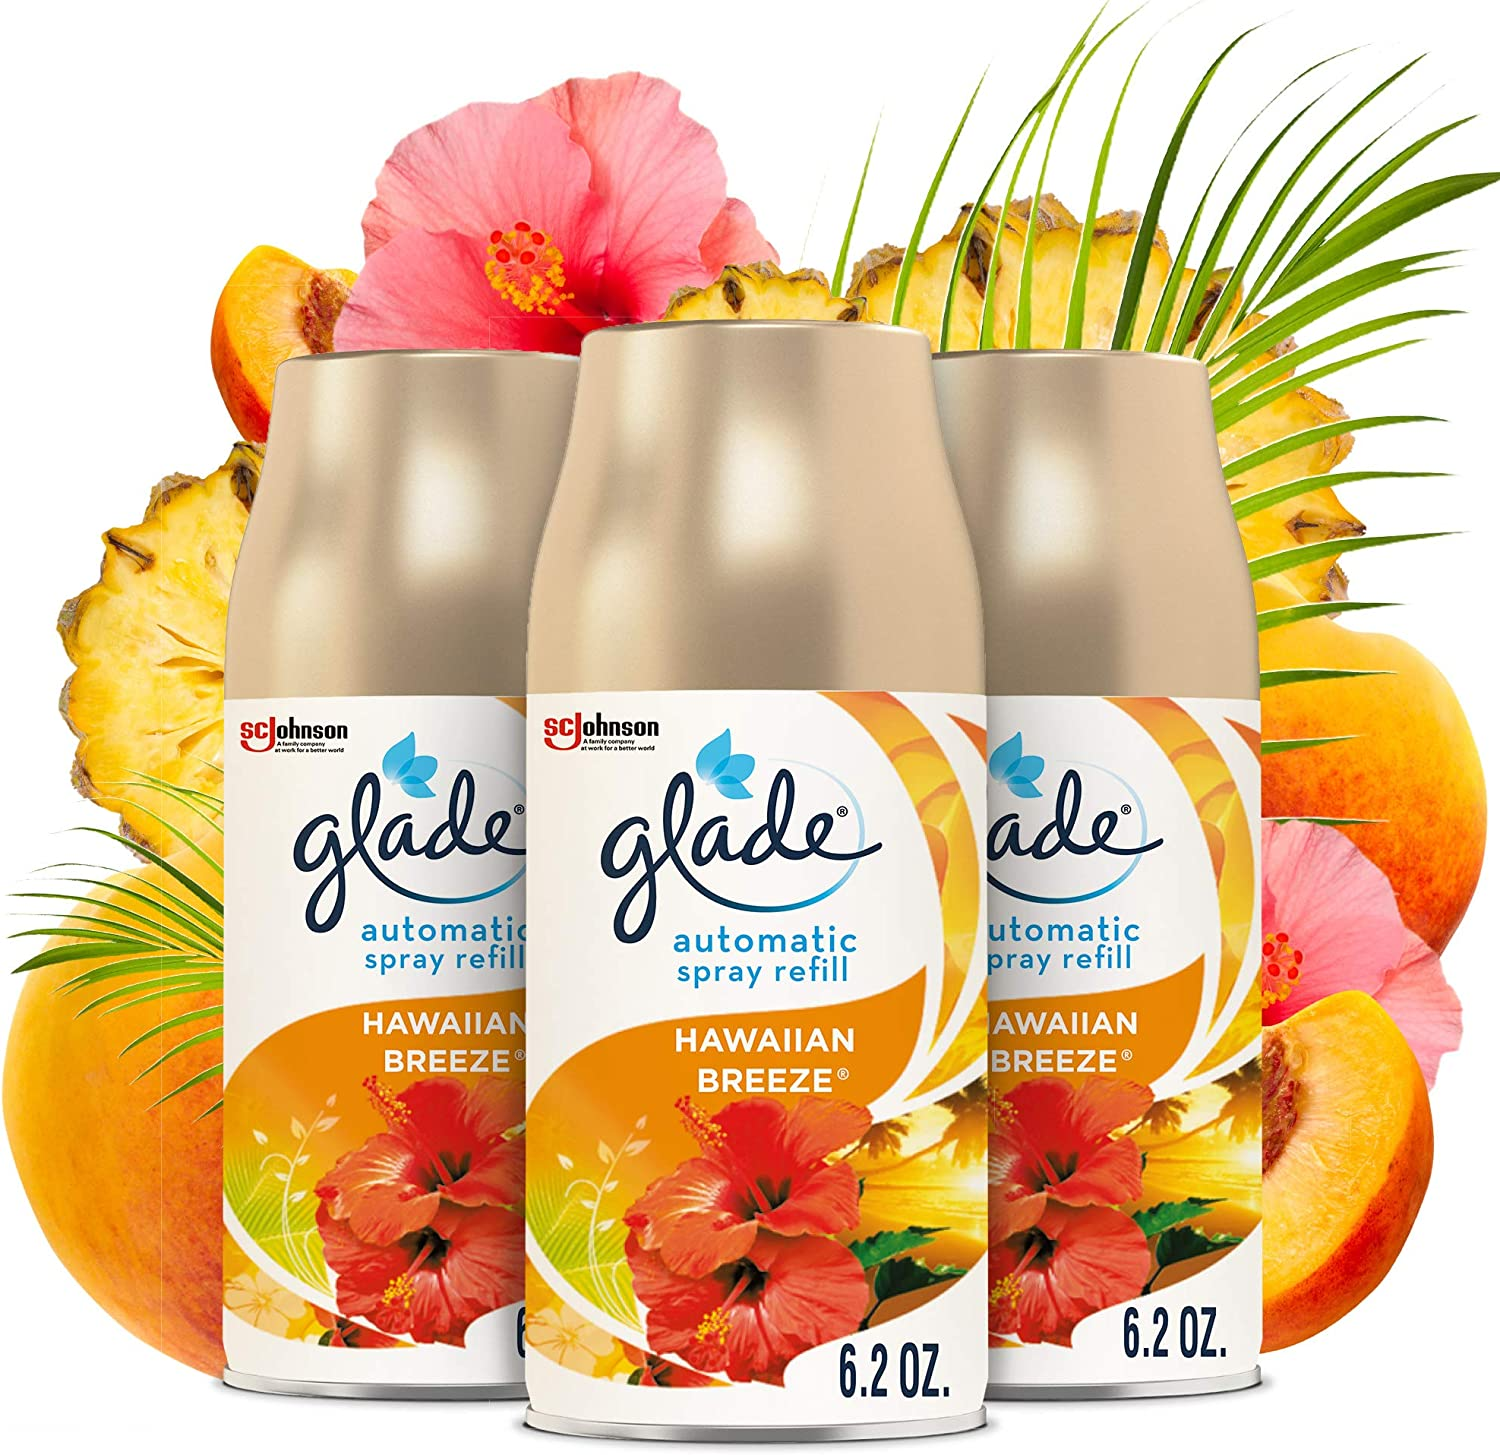 Glade Automatic Spray Refill, Air Freshener for Home and Bathroom, Hawaiian Breeze, 6.2 Oz, 3 Count